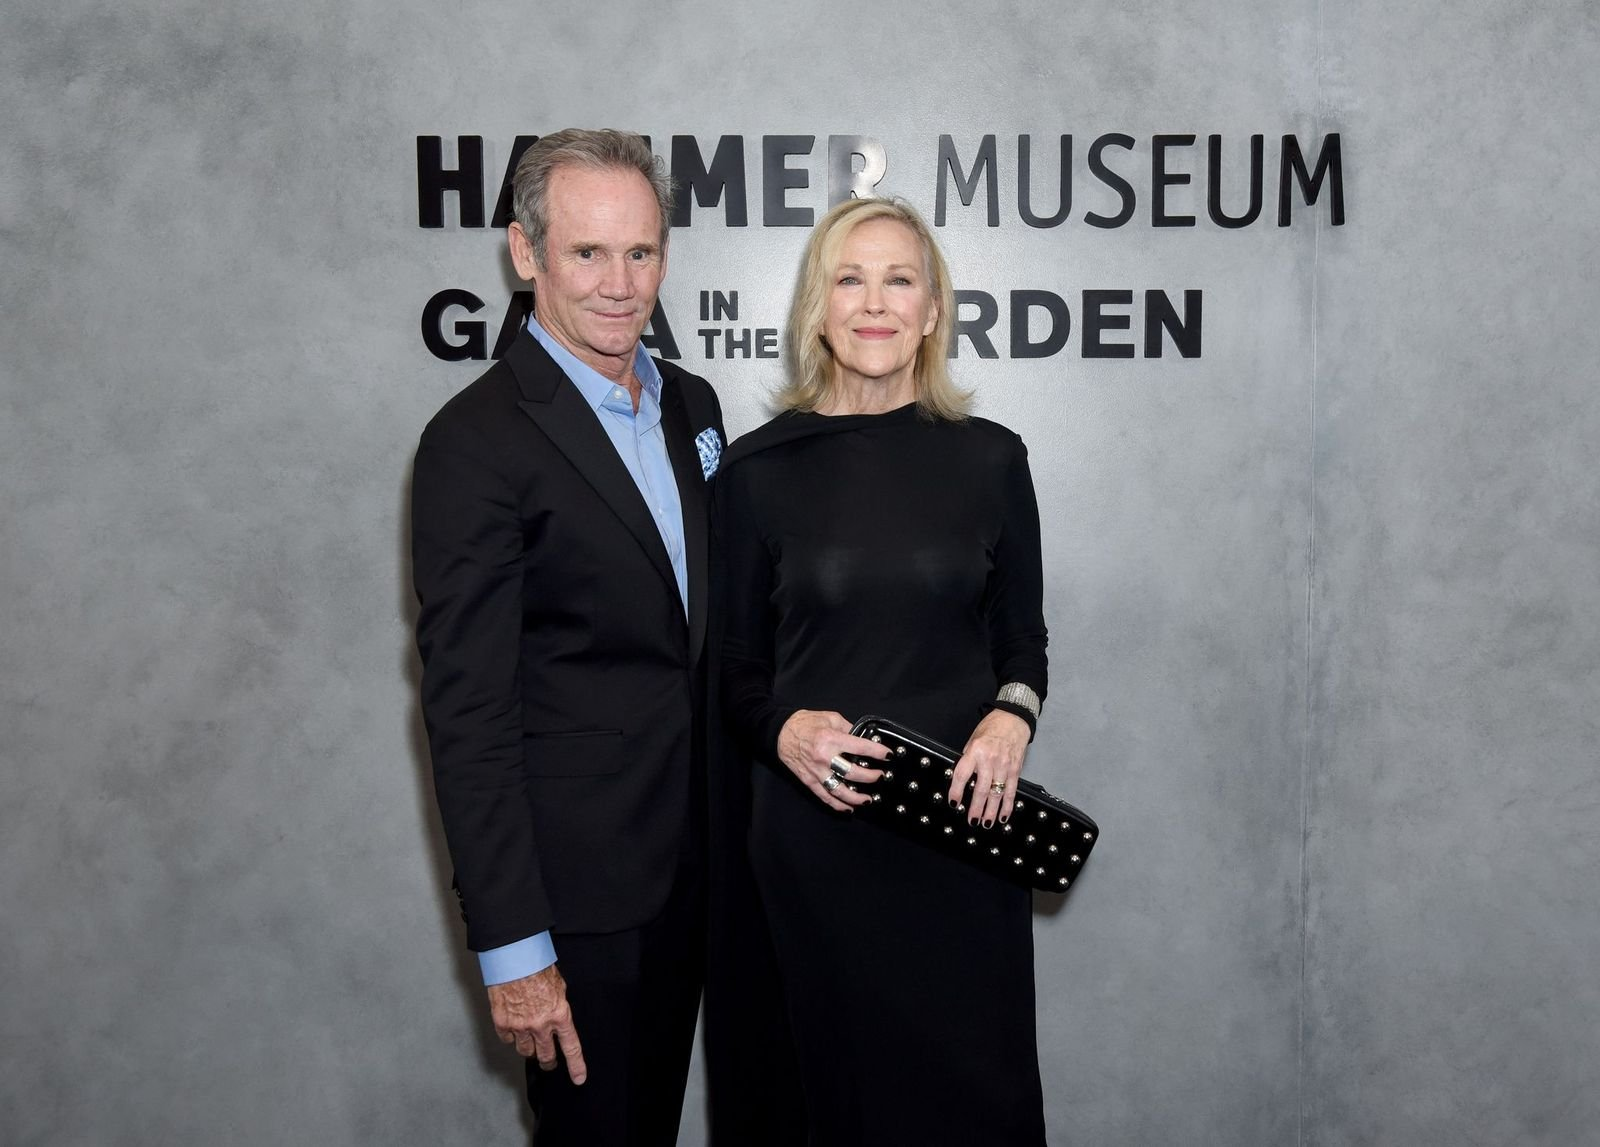 Bo Welch and Catherine O'Hara at Hammer Museum's 17th Annual Gala In The Garden on October 12, 2019 | Photo: Getty Images